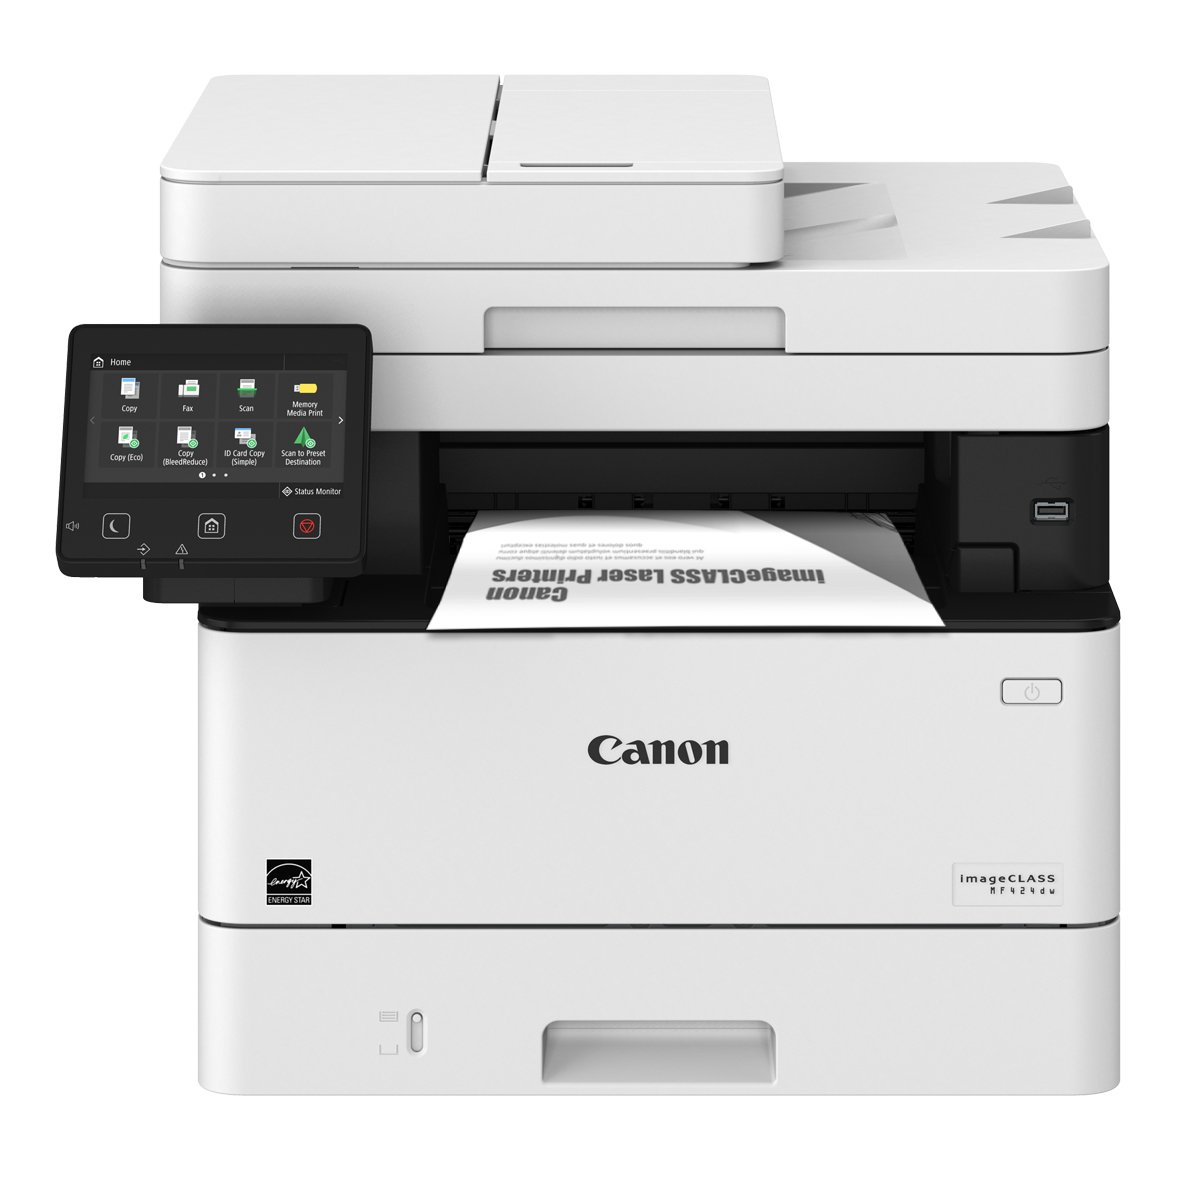 Canon imageCLASS MF424dw Monochrome Printer with Scanner Copier & Fax by Canon